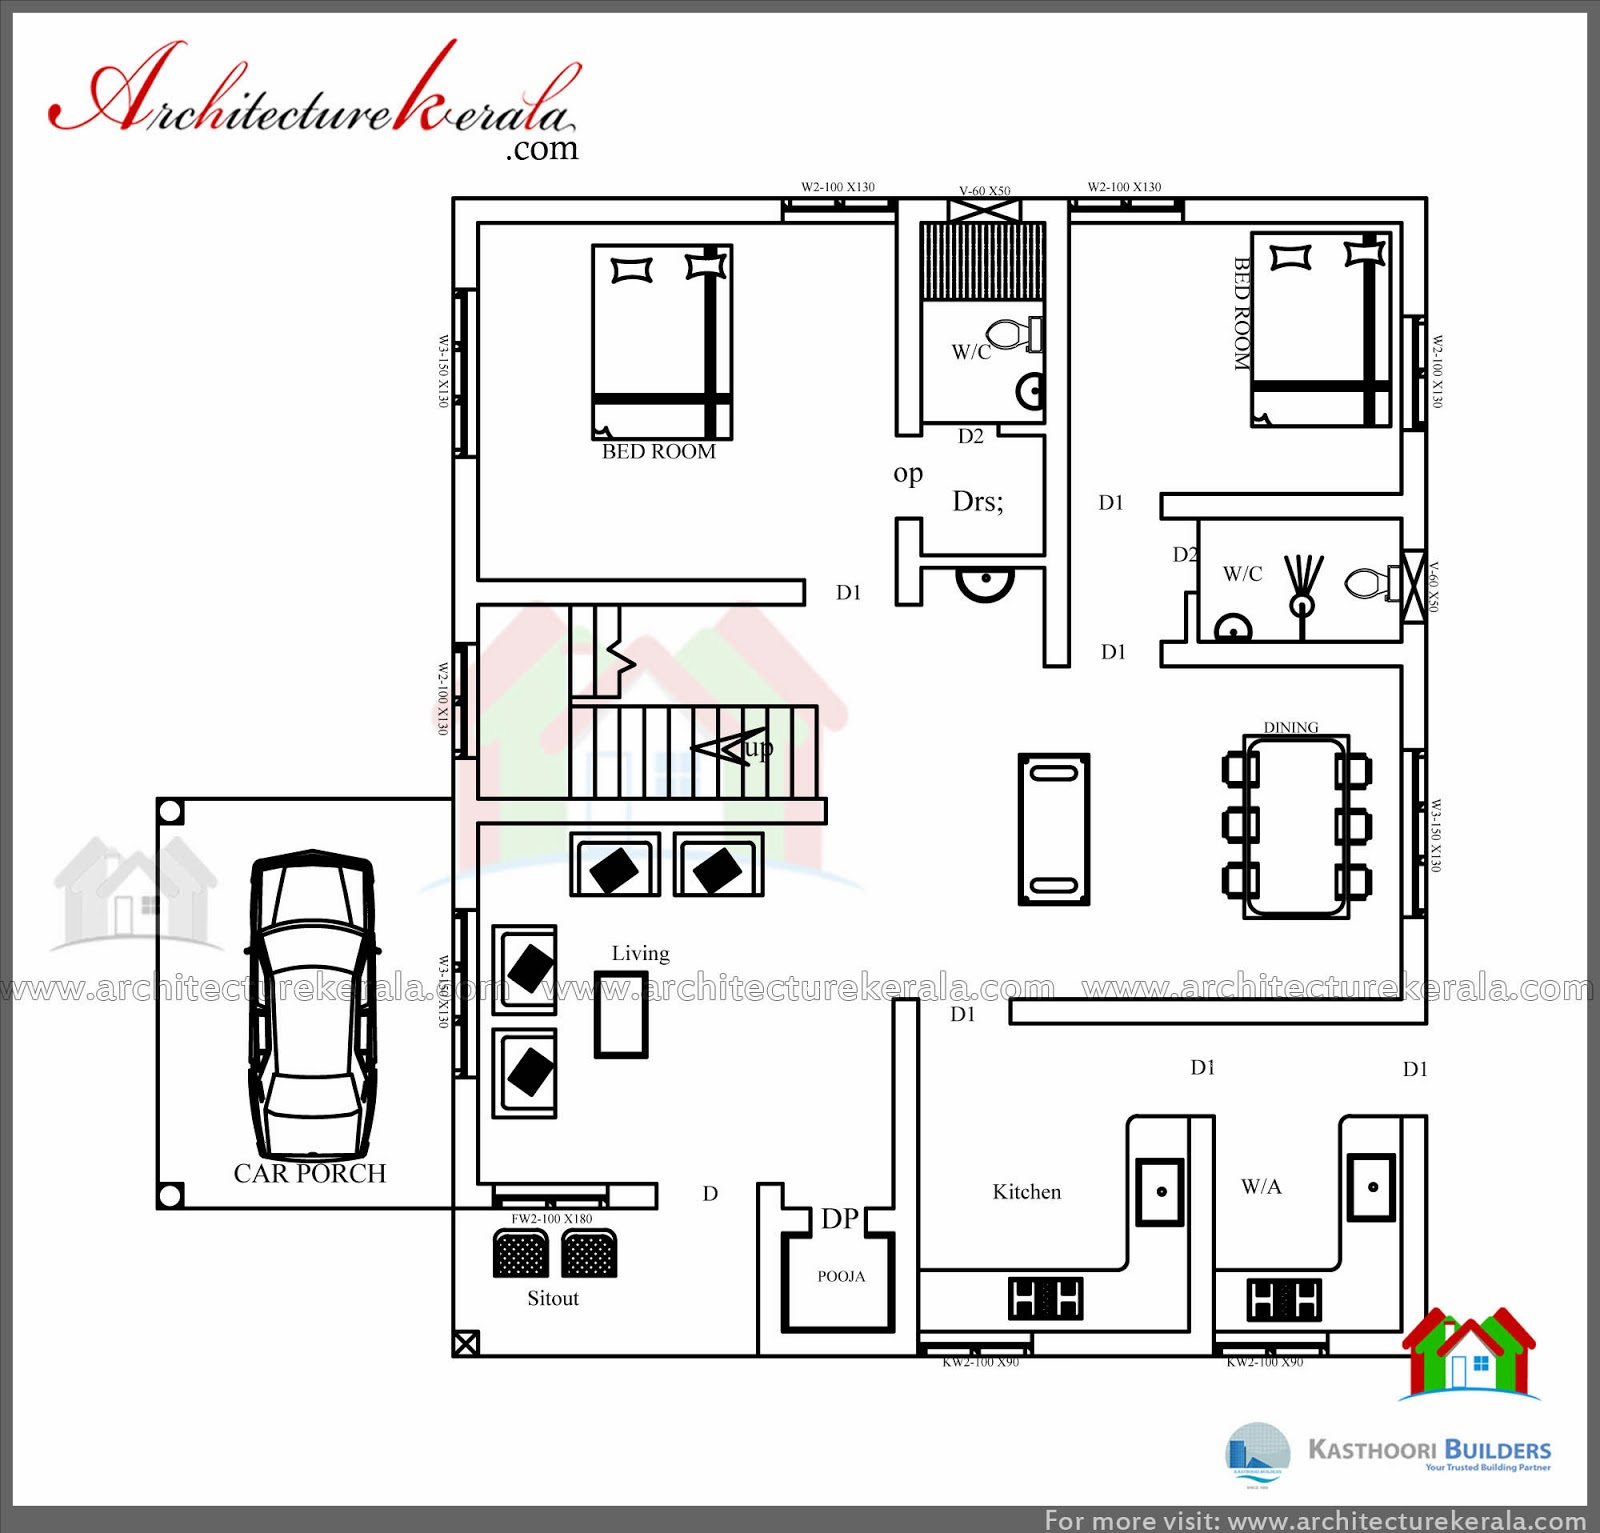 Low cost 3 bedroom kerala house plan with elevation free for 2 bedroom house plans in kerala